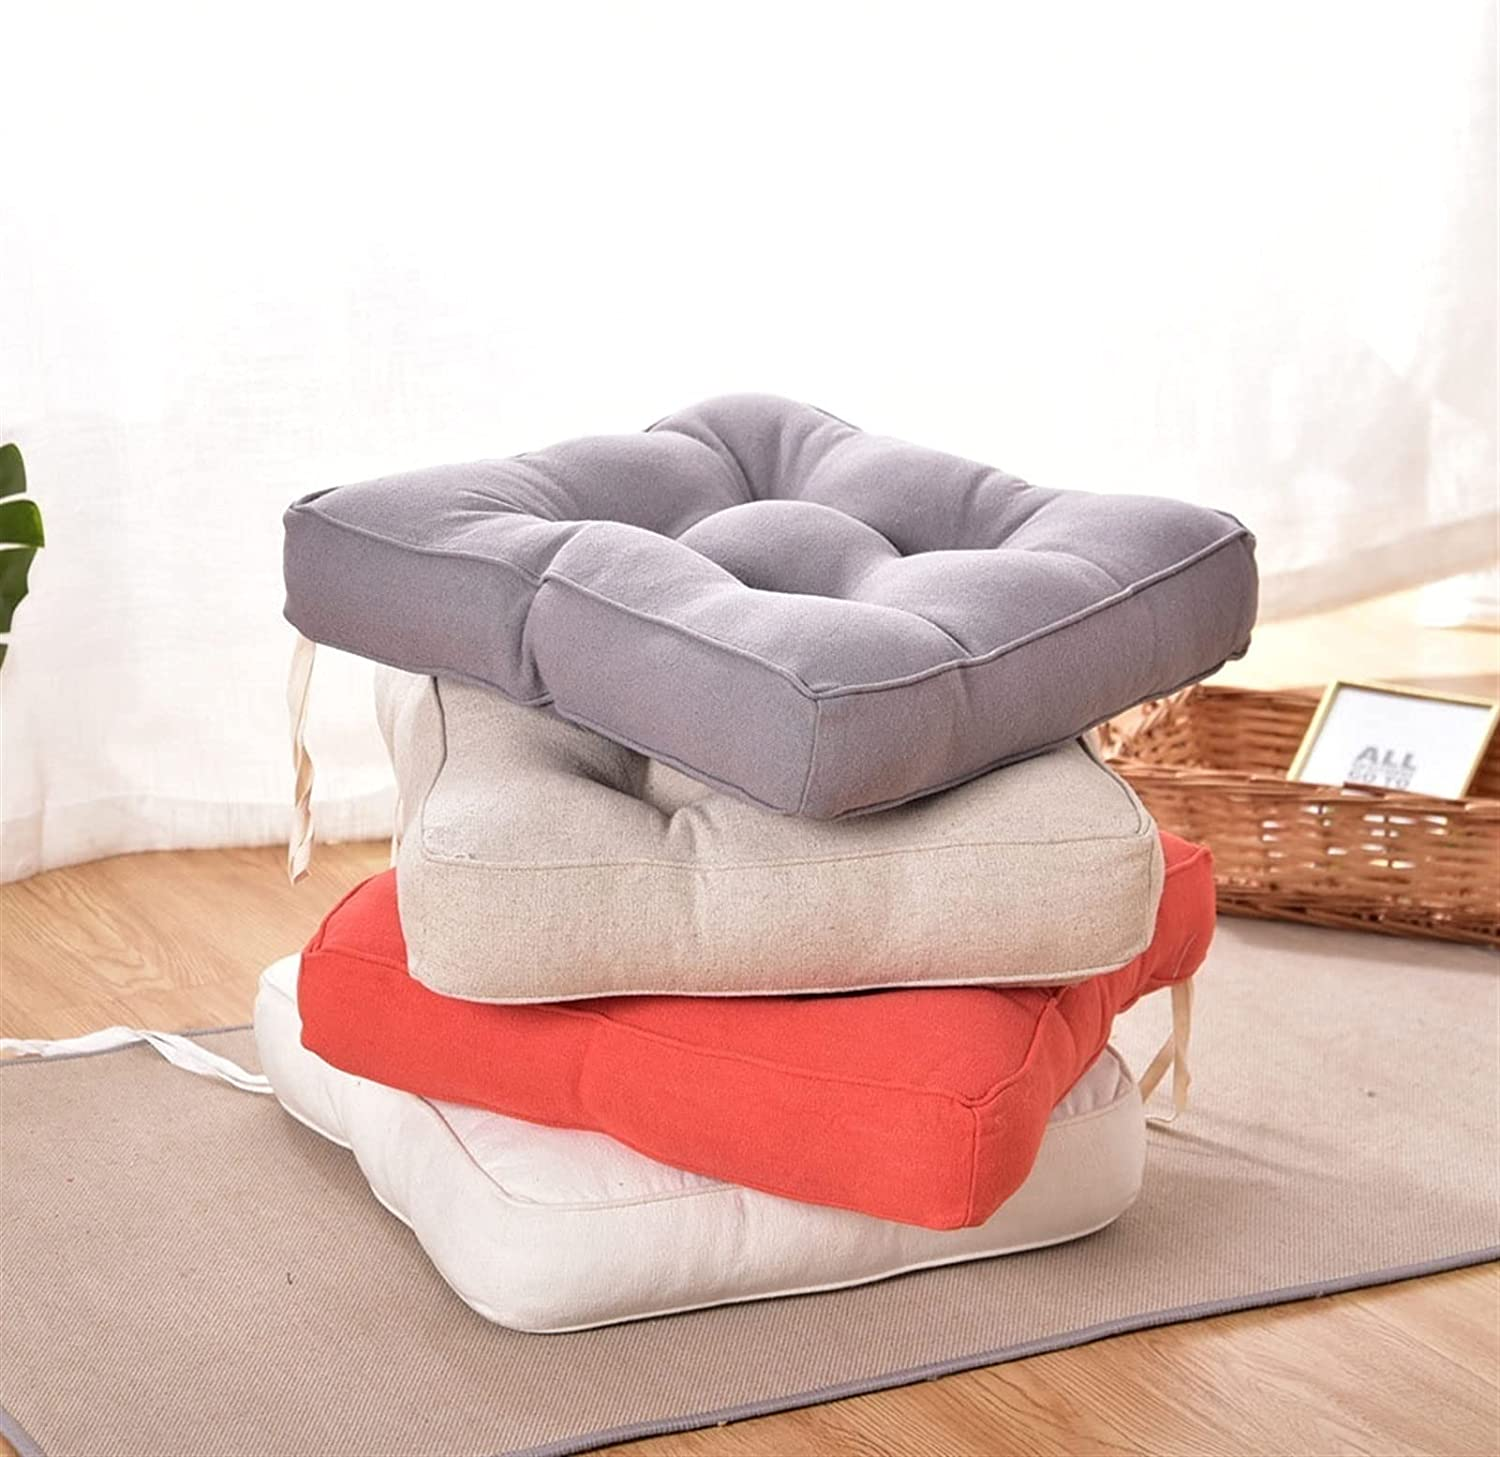 Outdoor Garden Cushion 1PCS 40cm Classic Square Sales wit Pad Chair Seat Back